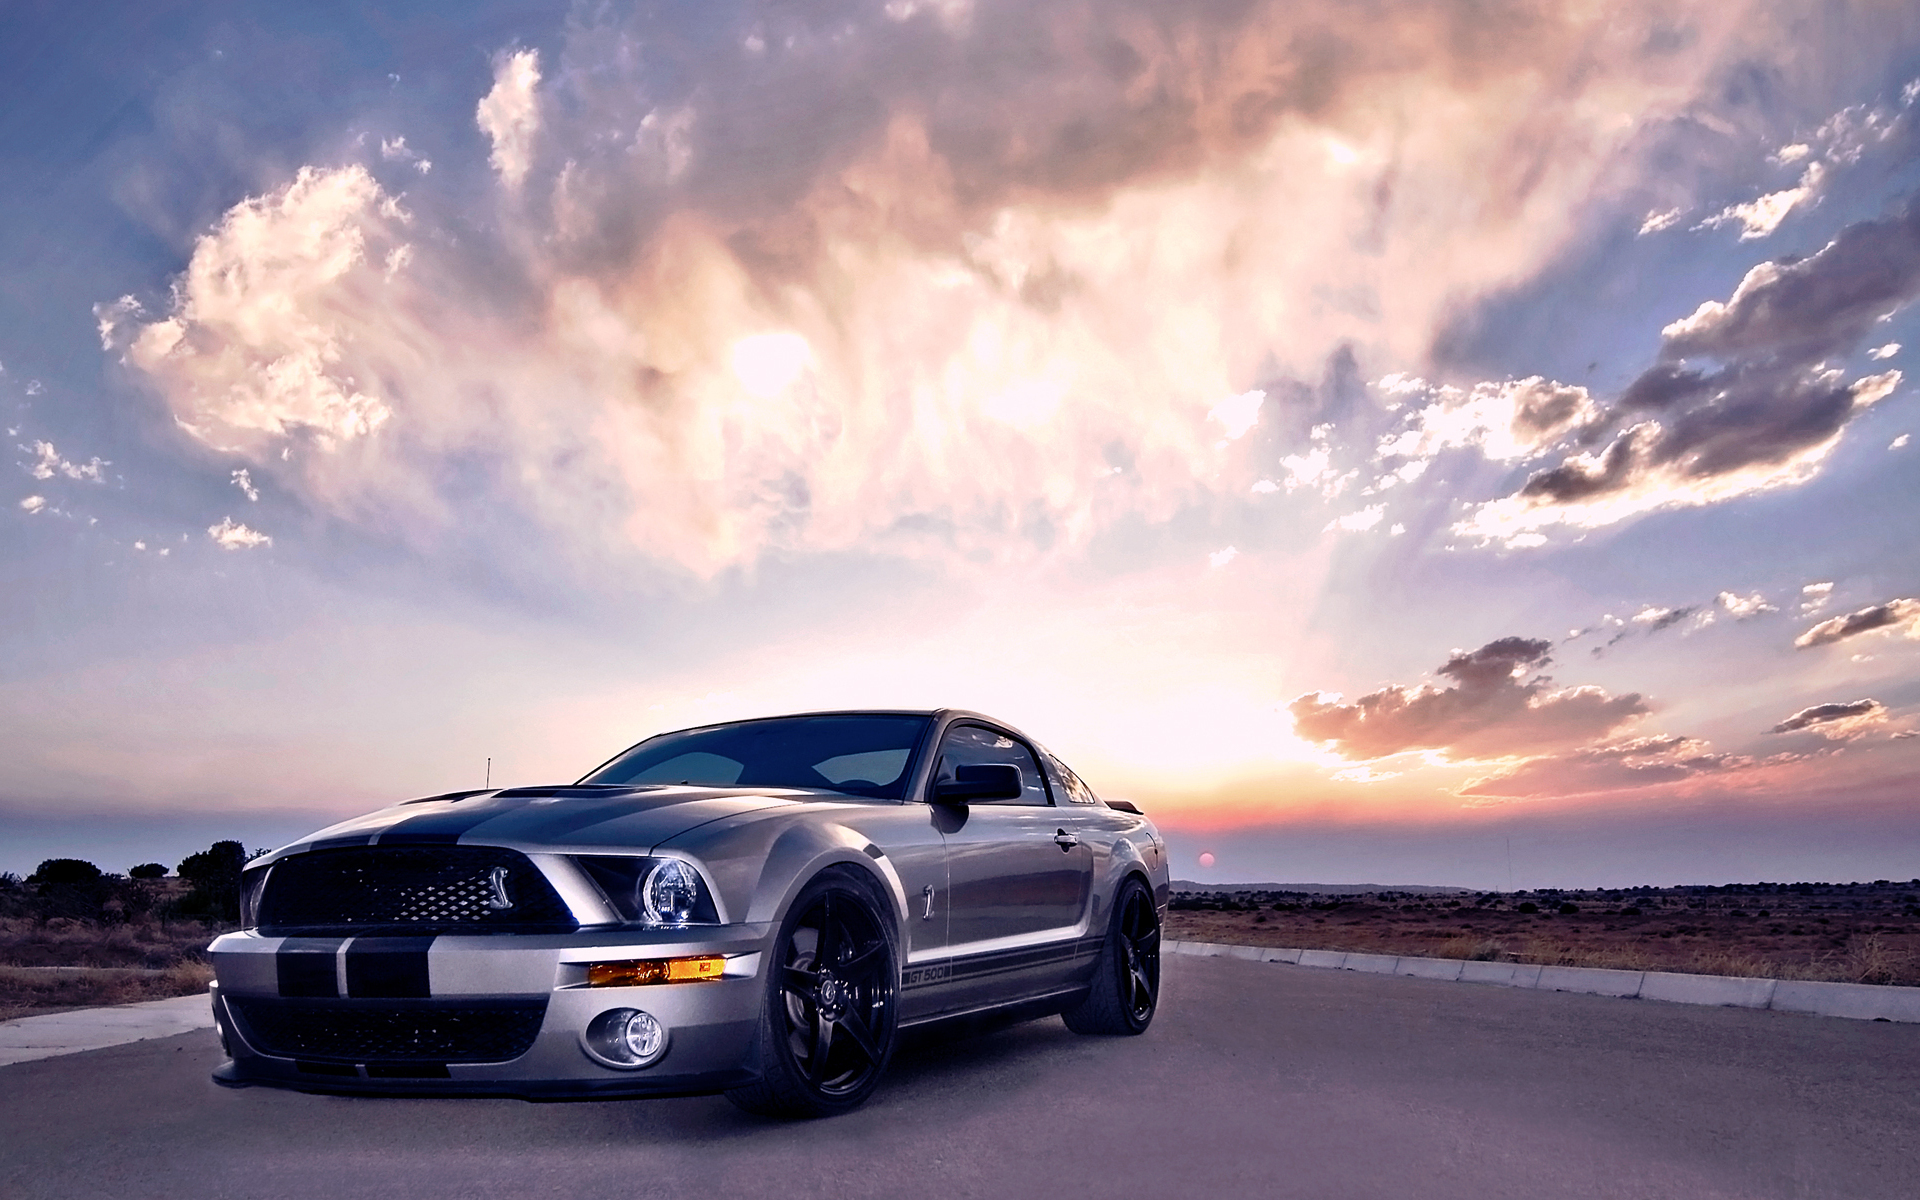 New ford mustang shelby hq wallpapers full hd pictures - Ford mustang wallpaper download ...